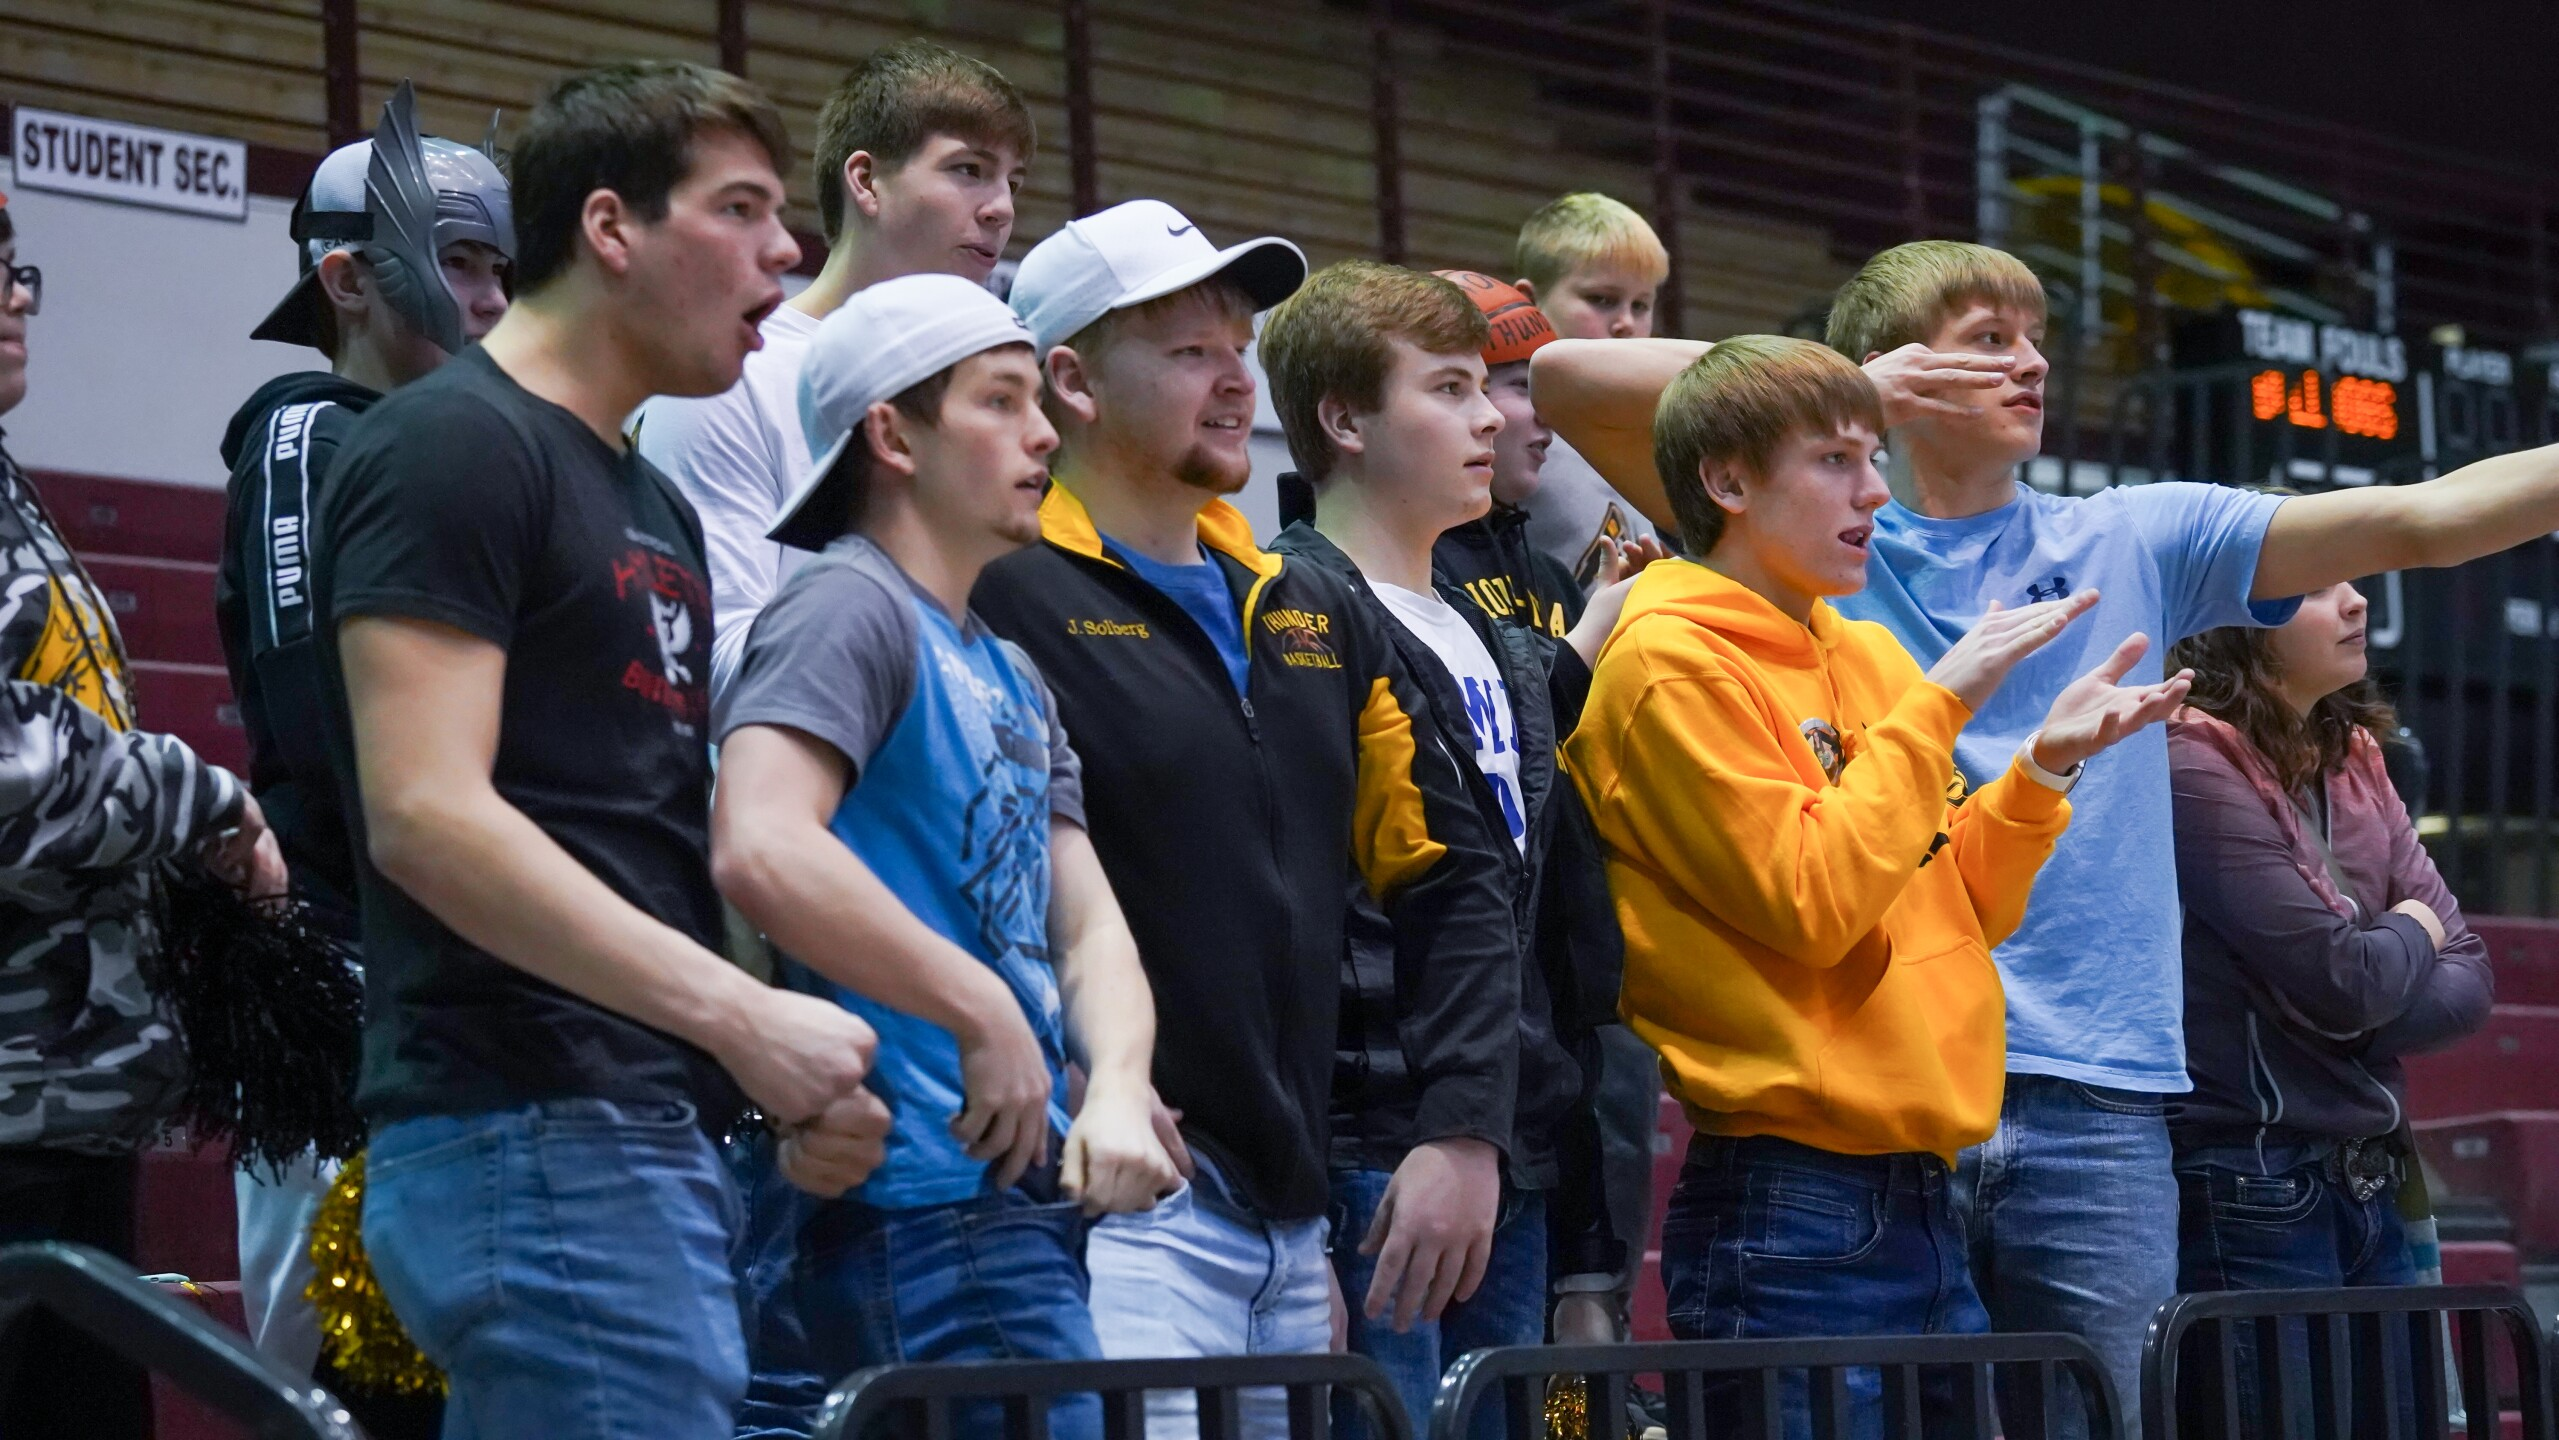 Westby-Grenora basketball fans